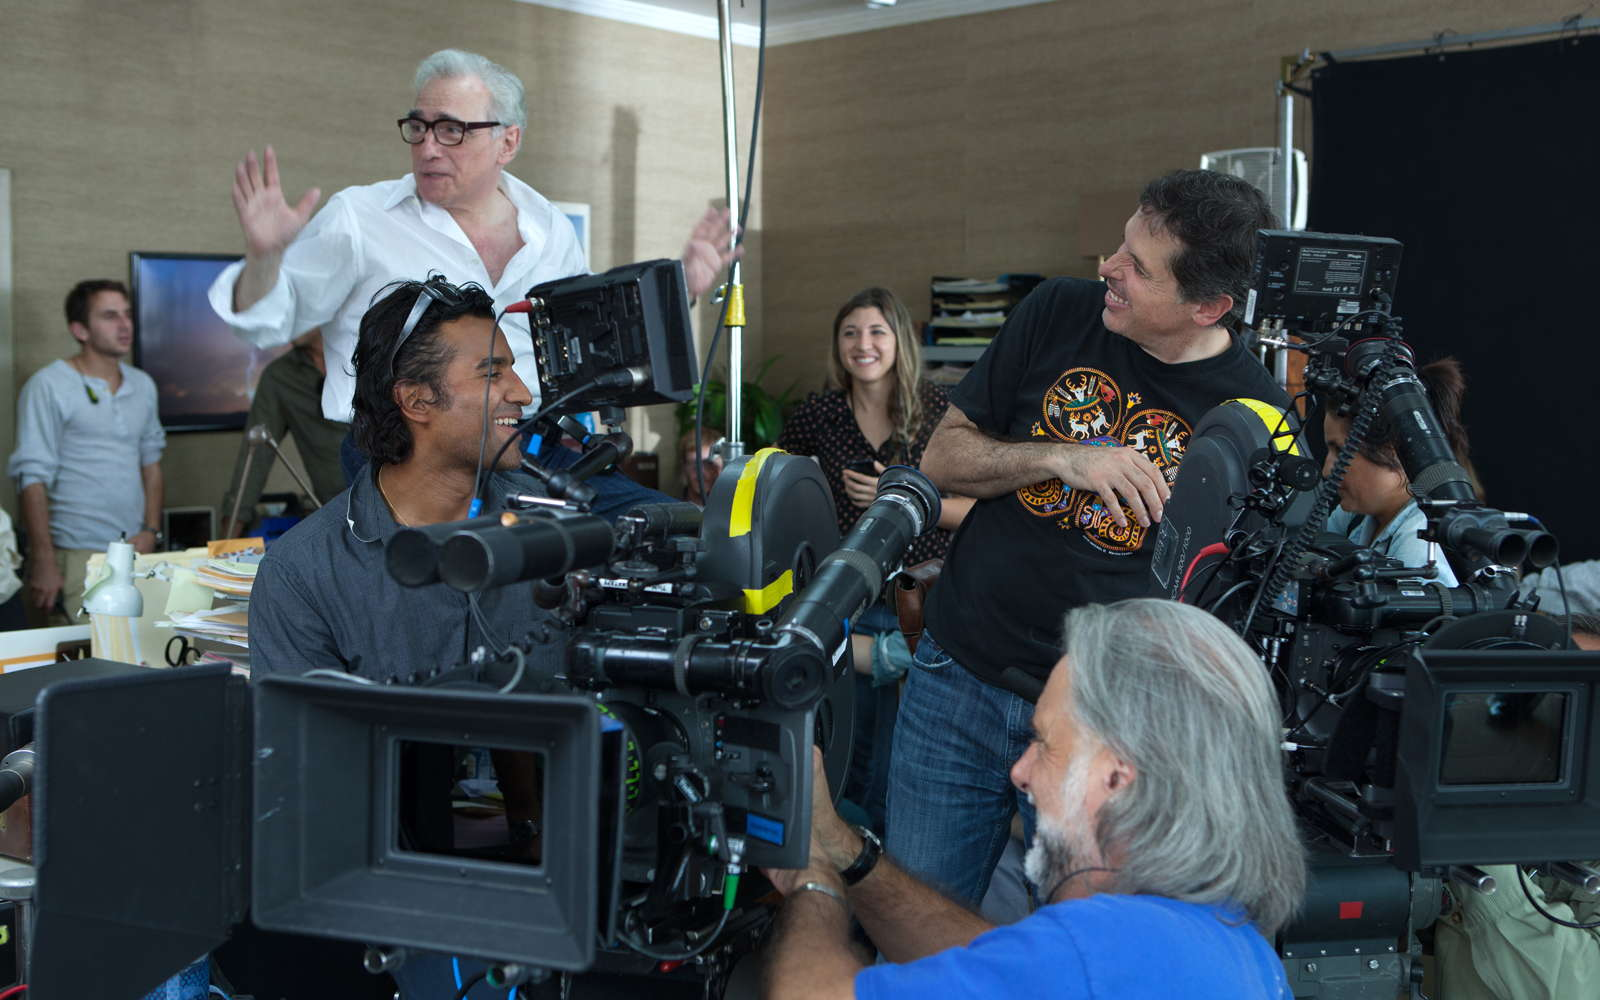 Scorsese chatting with his camera crew, on the set of 'The Wolf of Wall Street' (image: Paramount Pictures).